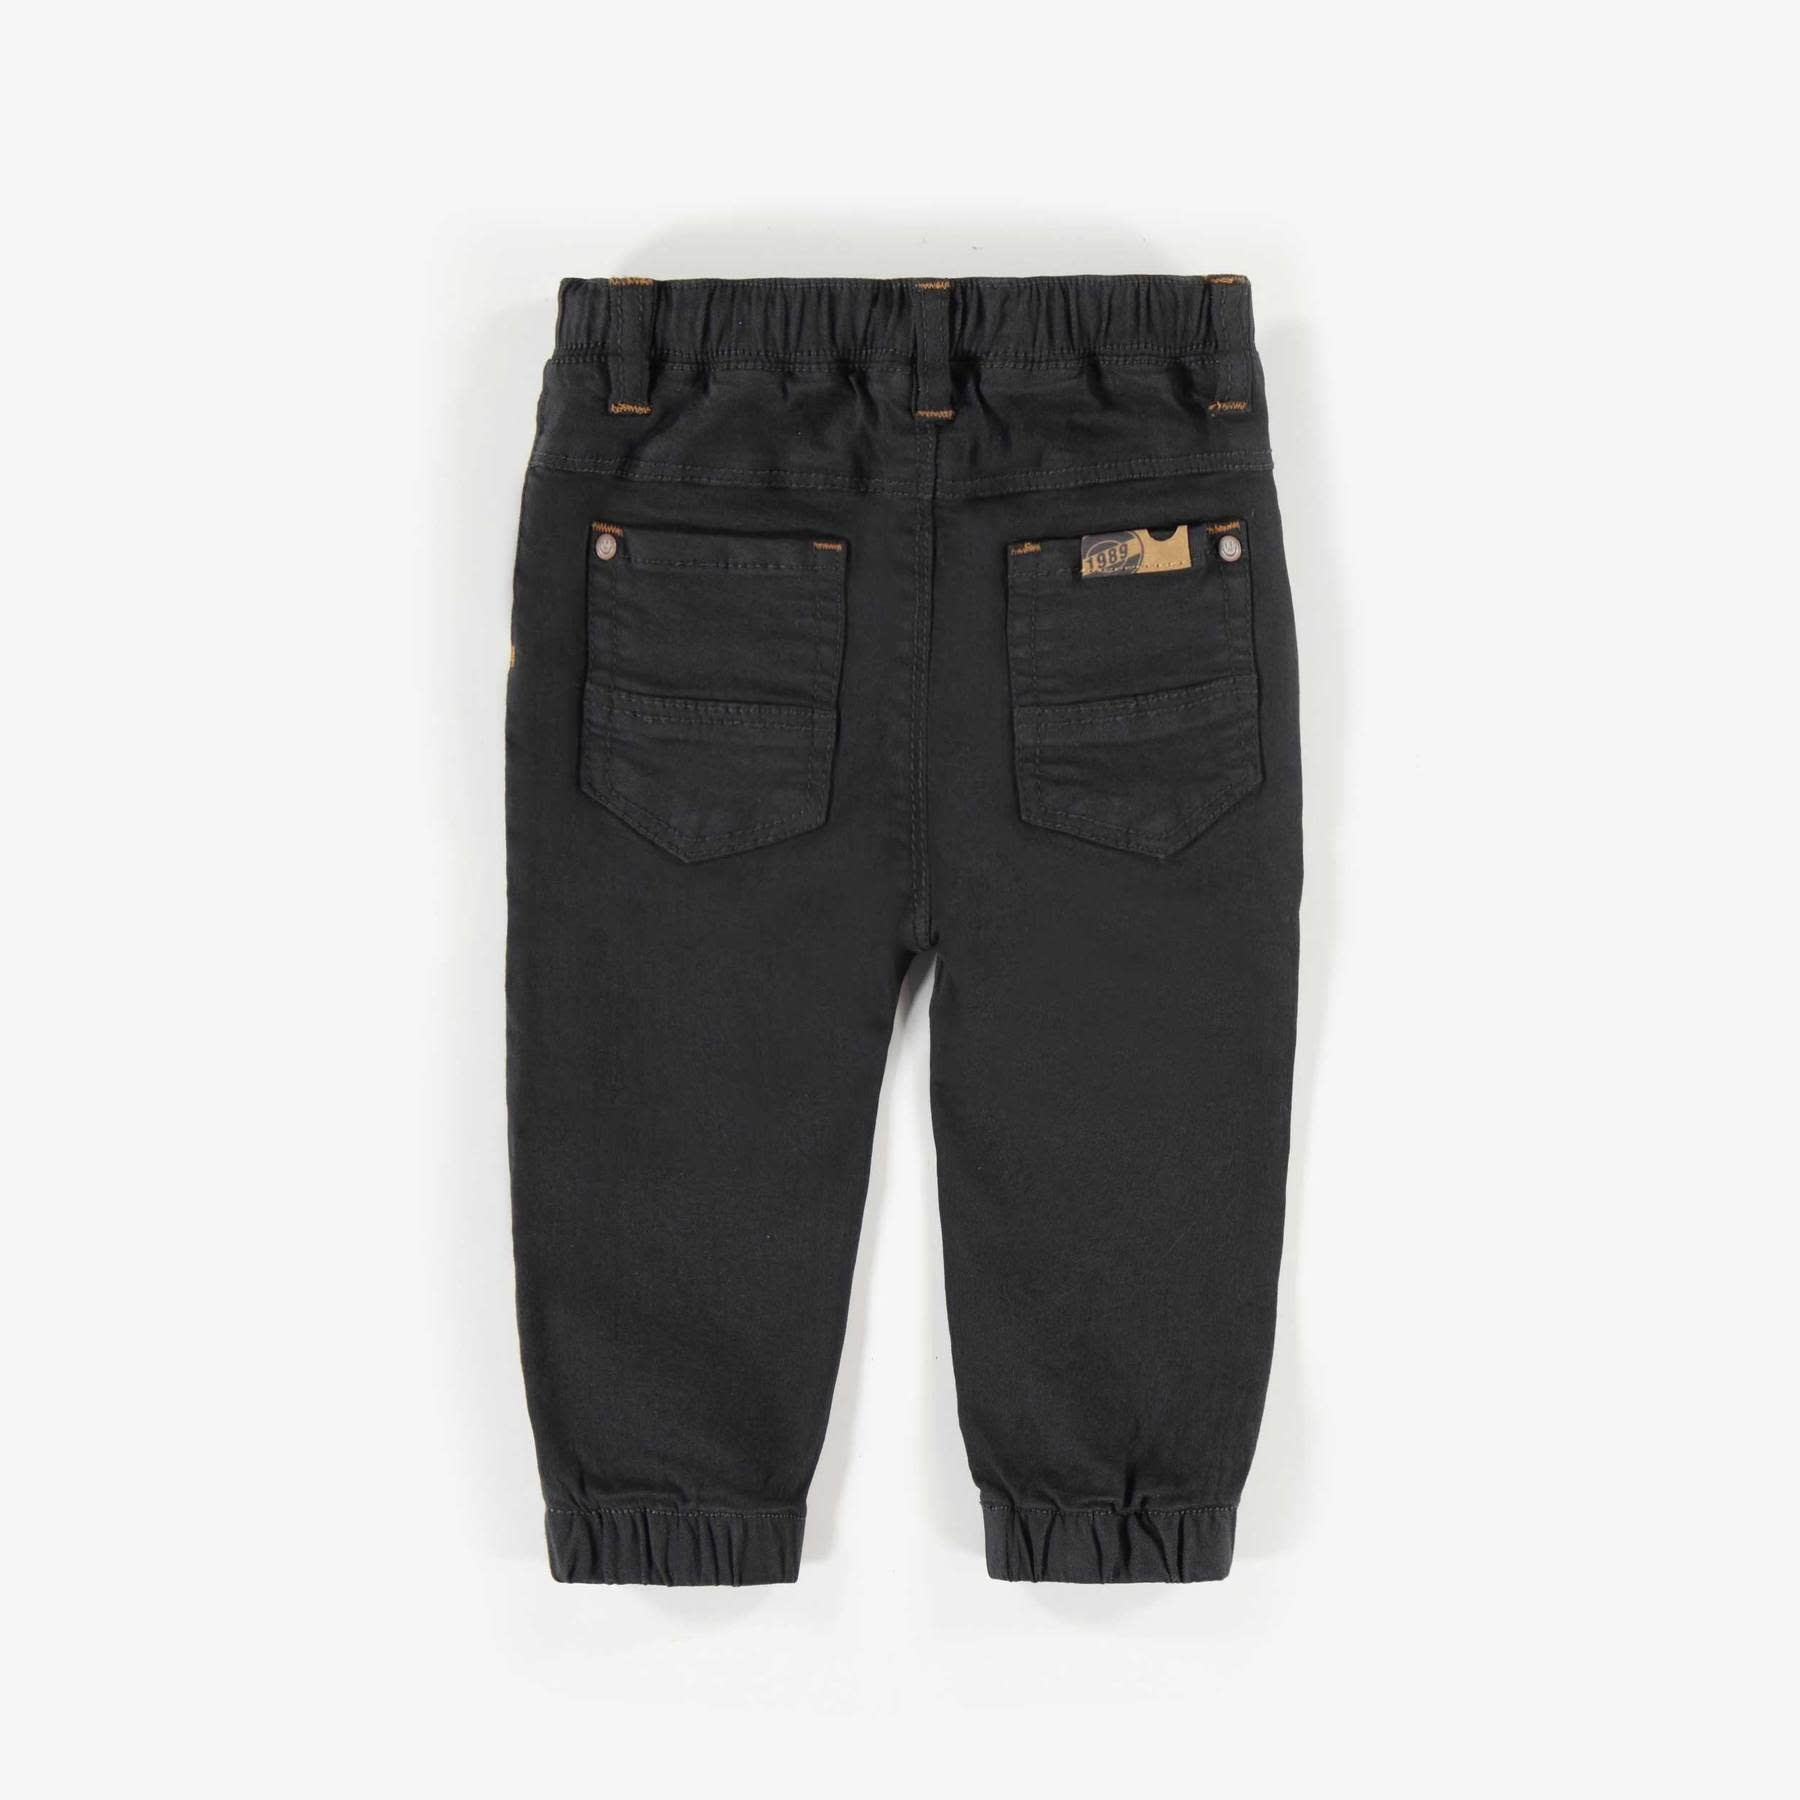 Charcoal Cuffed Jeans